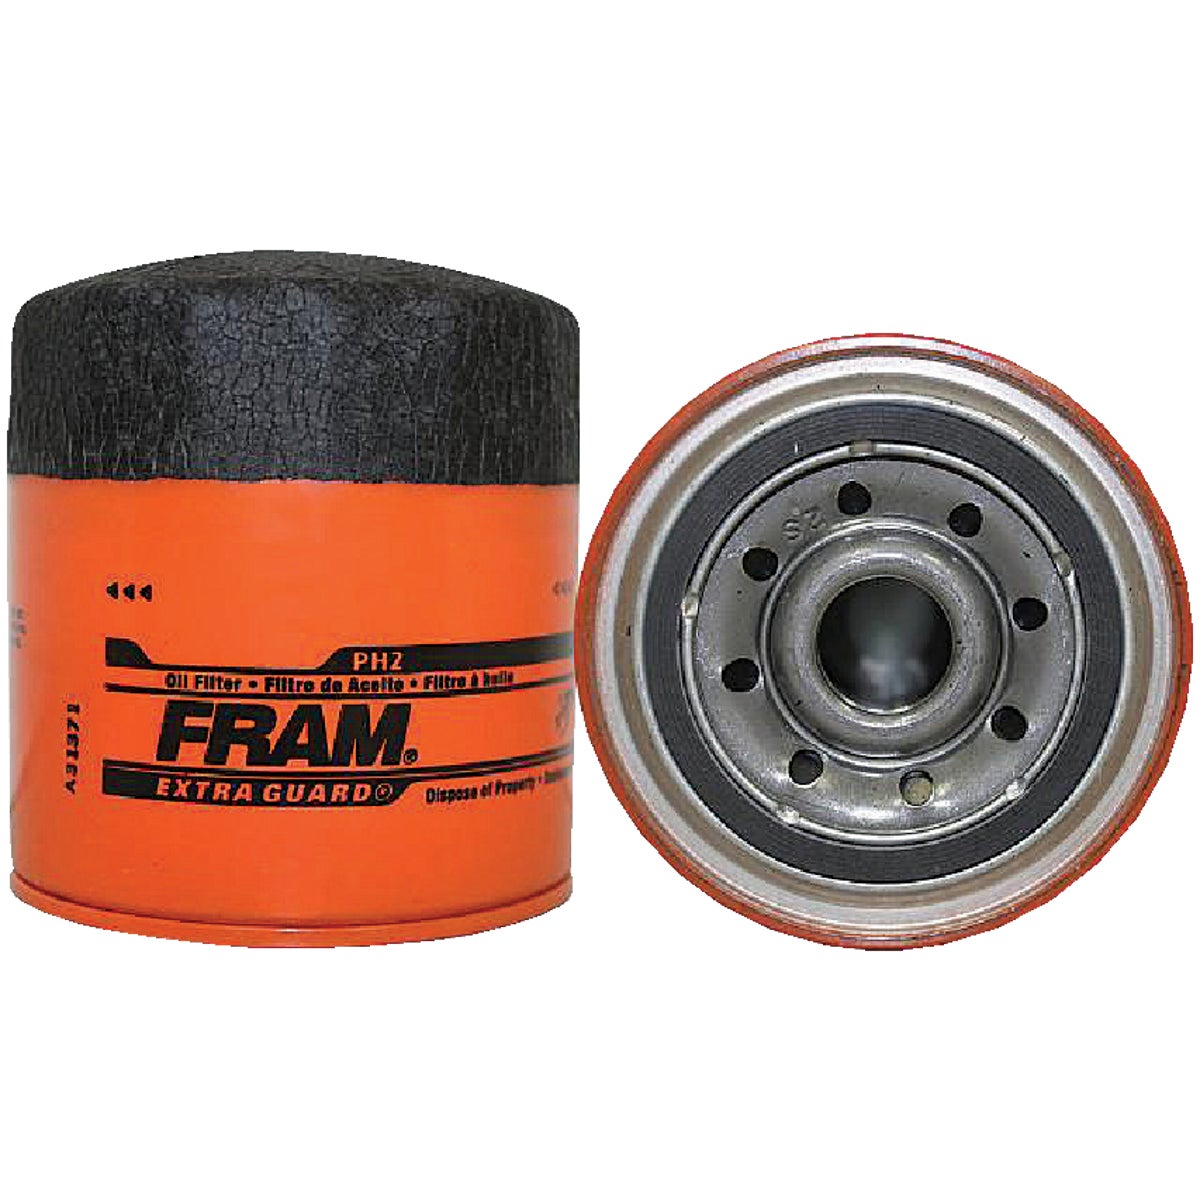 OIL FILTER - PH2 by Fram Group